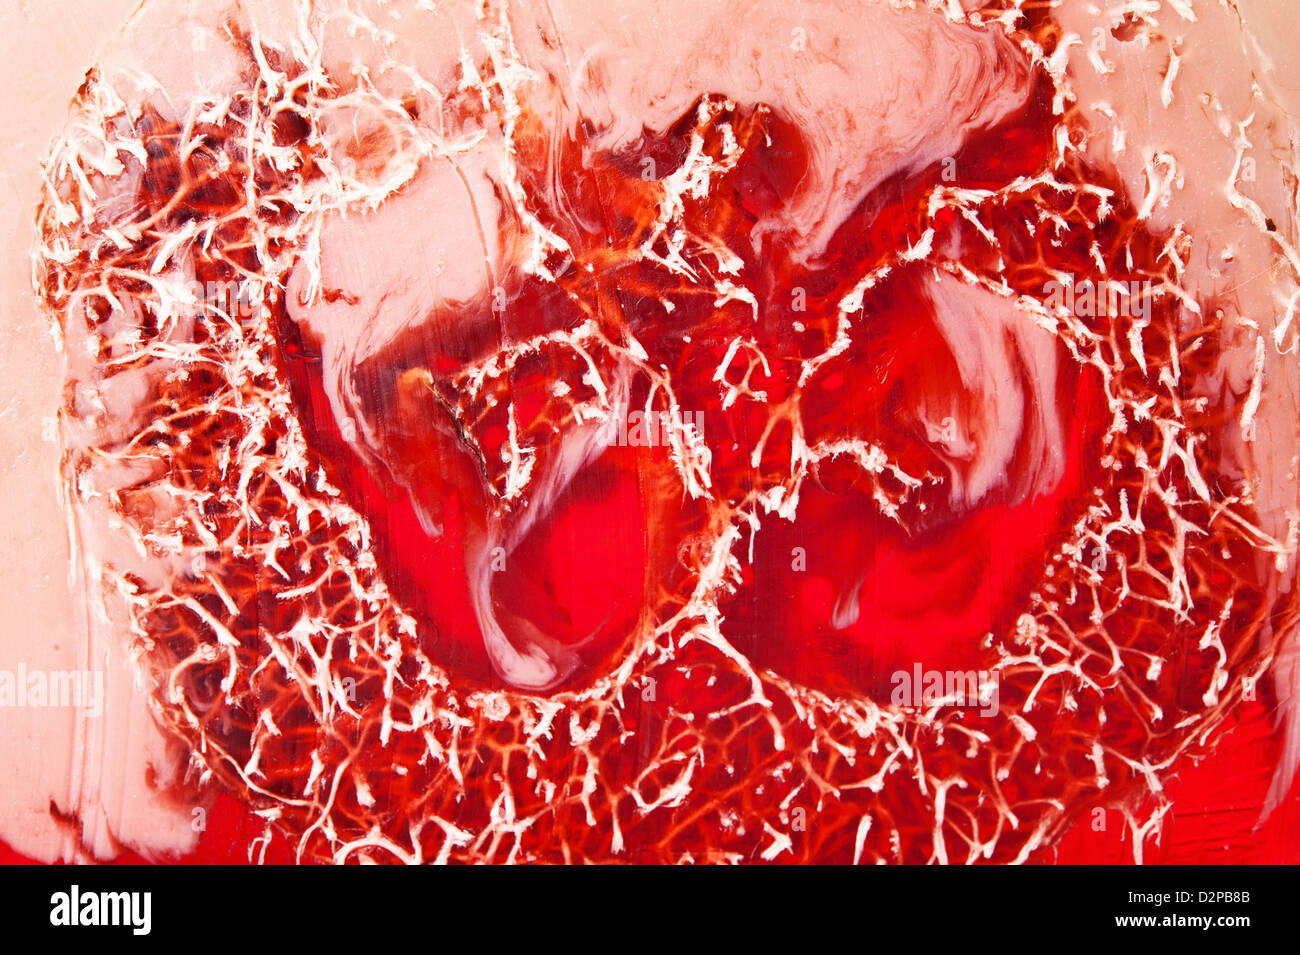 Texture of red handmade soap on clearance - Stock Image